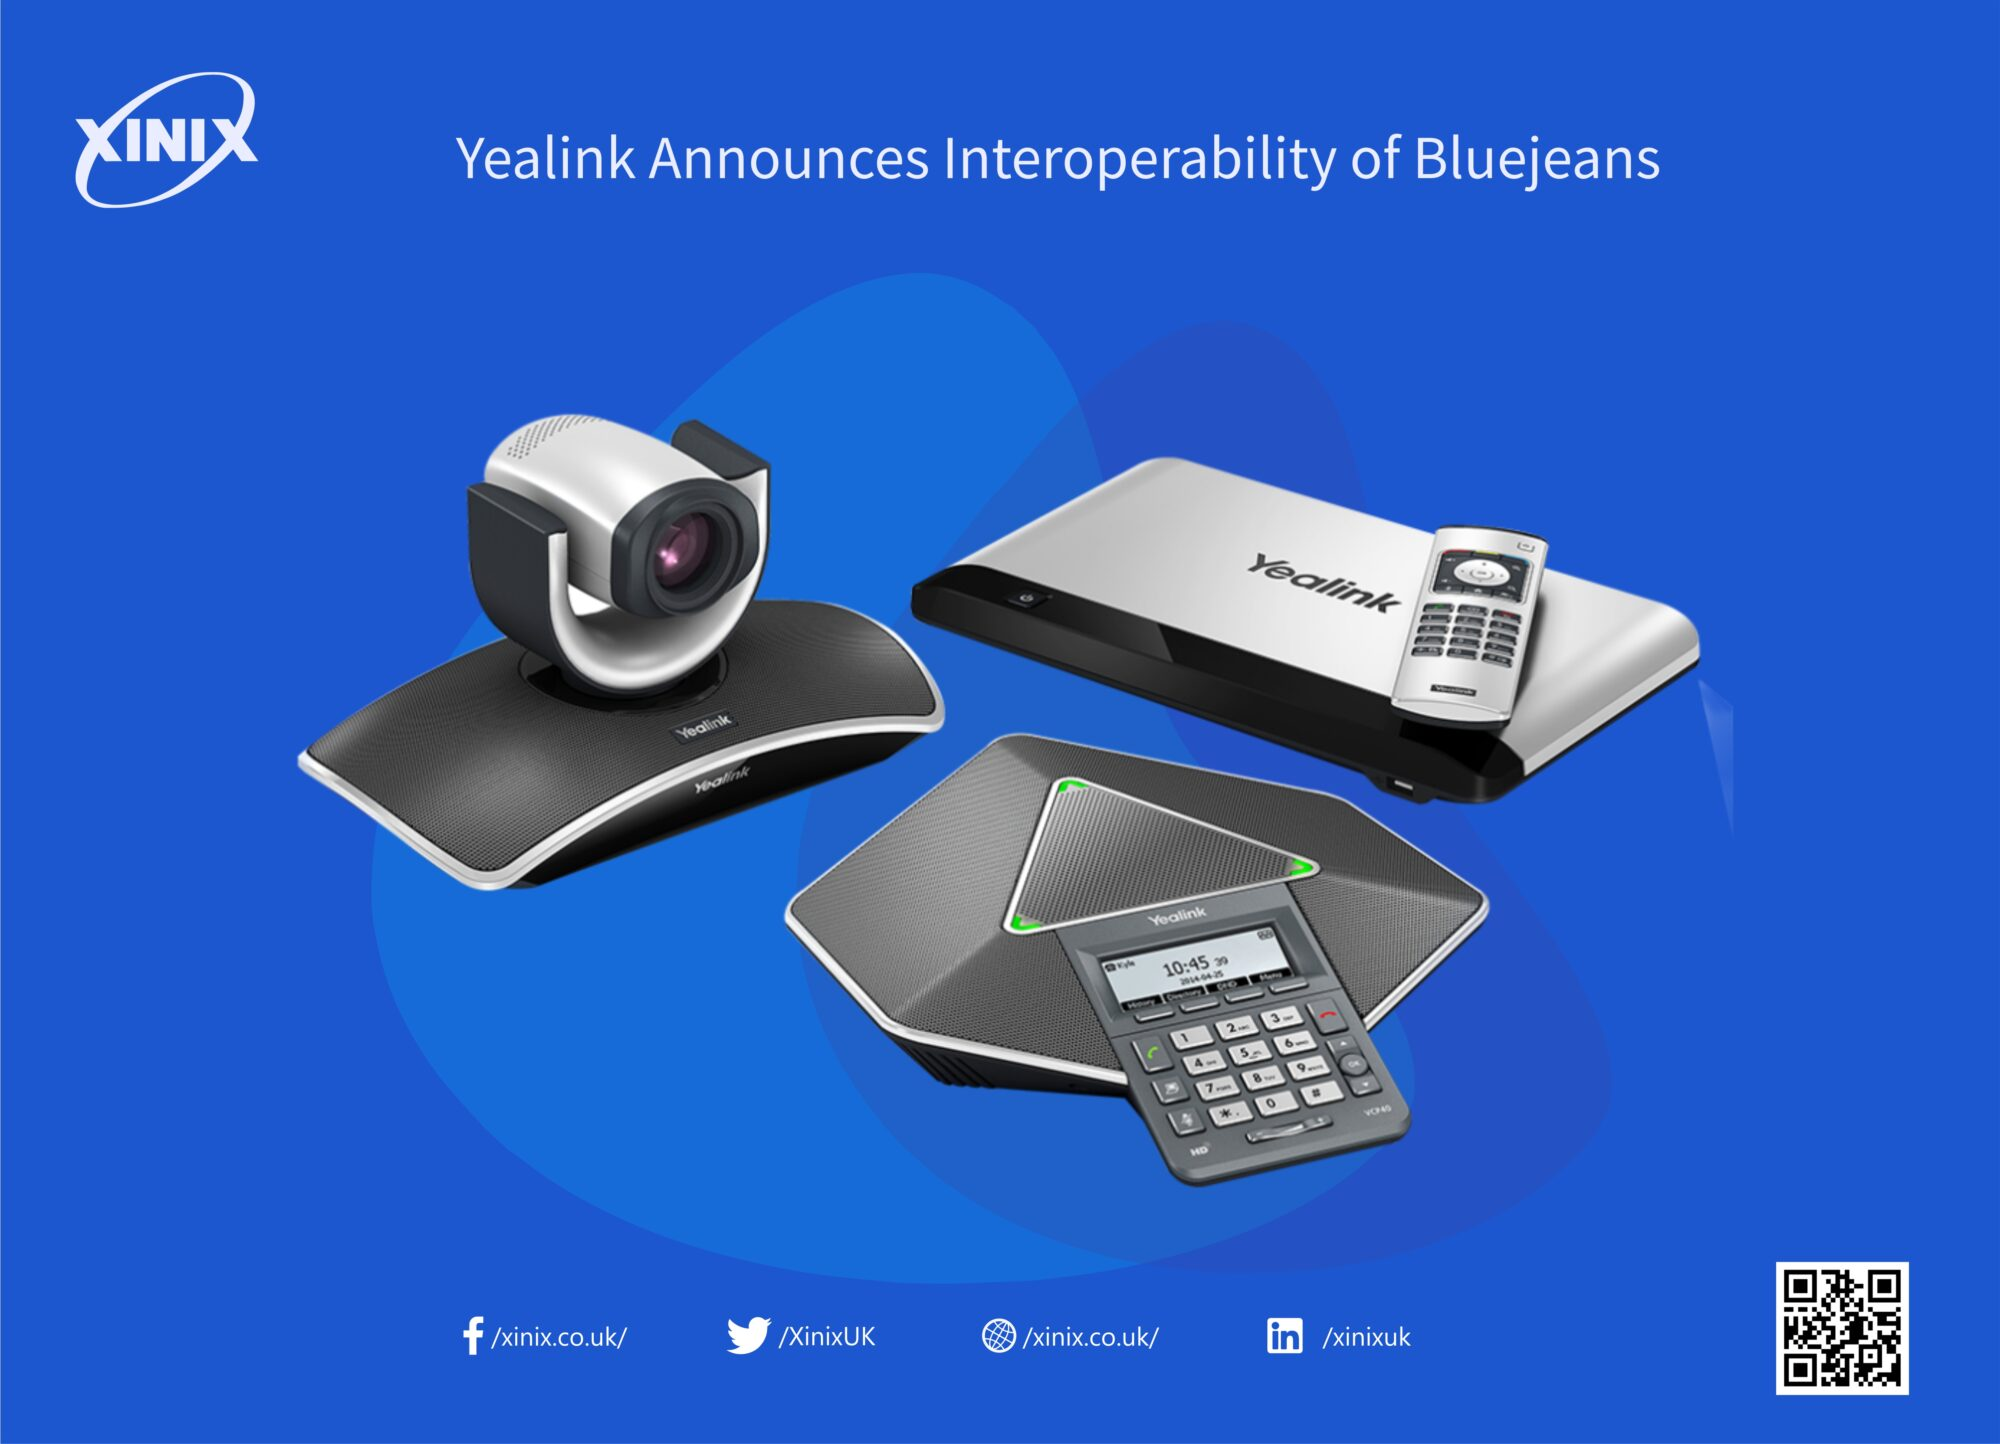 Yealink Announces Interoperability of Bluejeans